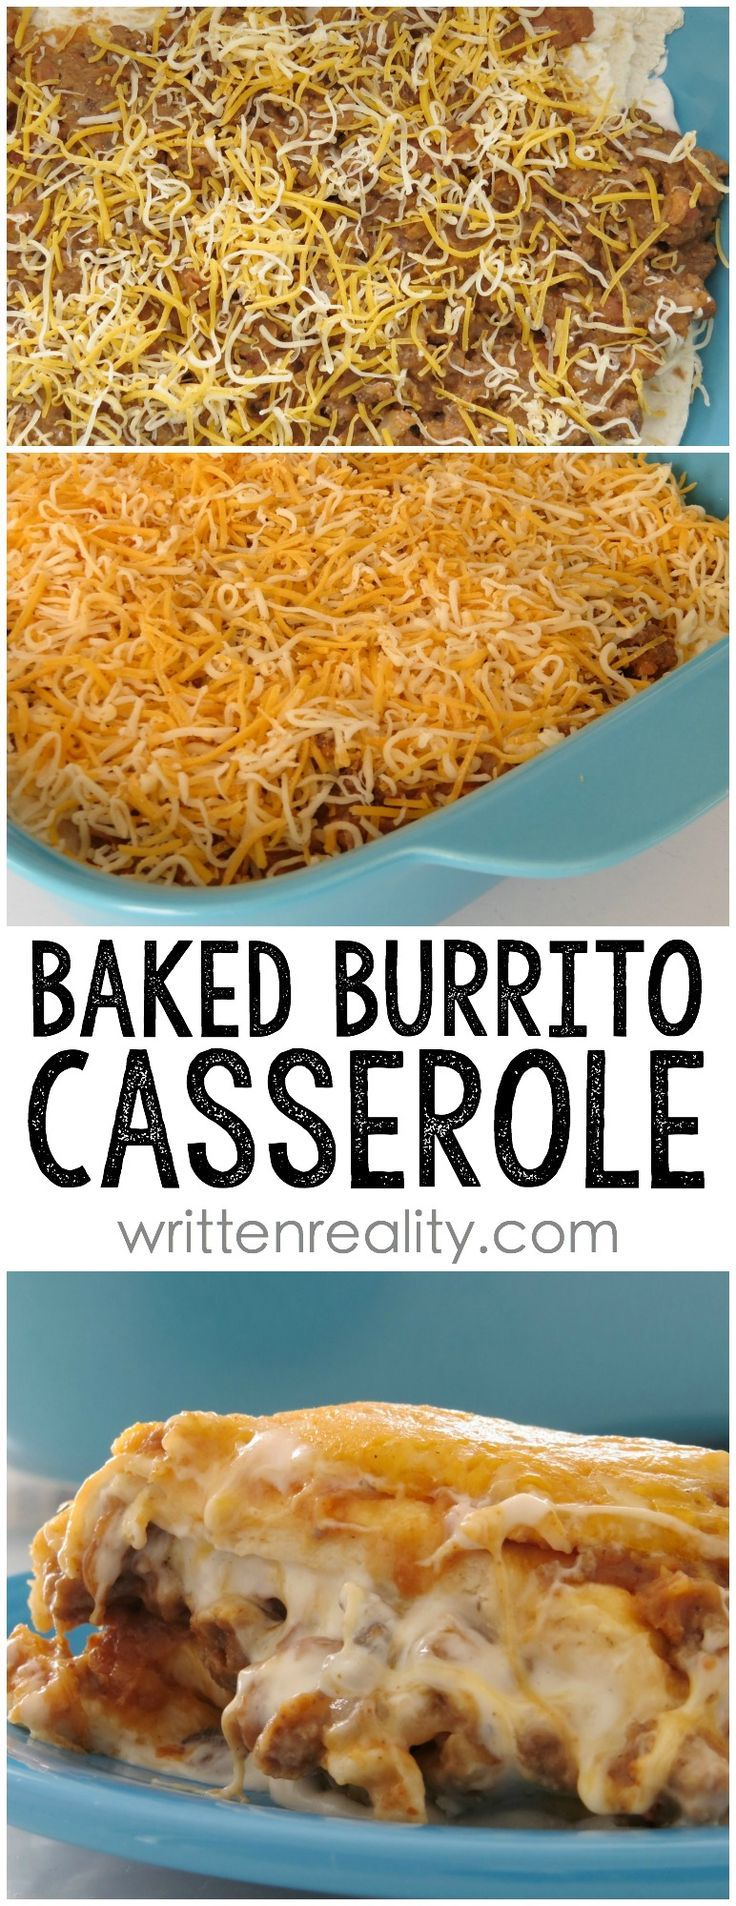 Easy Baked Burrito Casserole Recipe - Written Reality